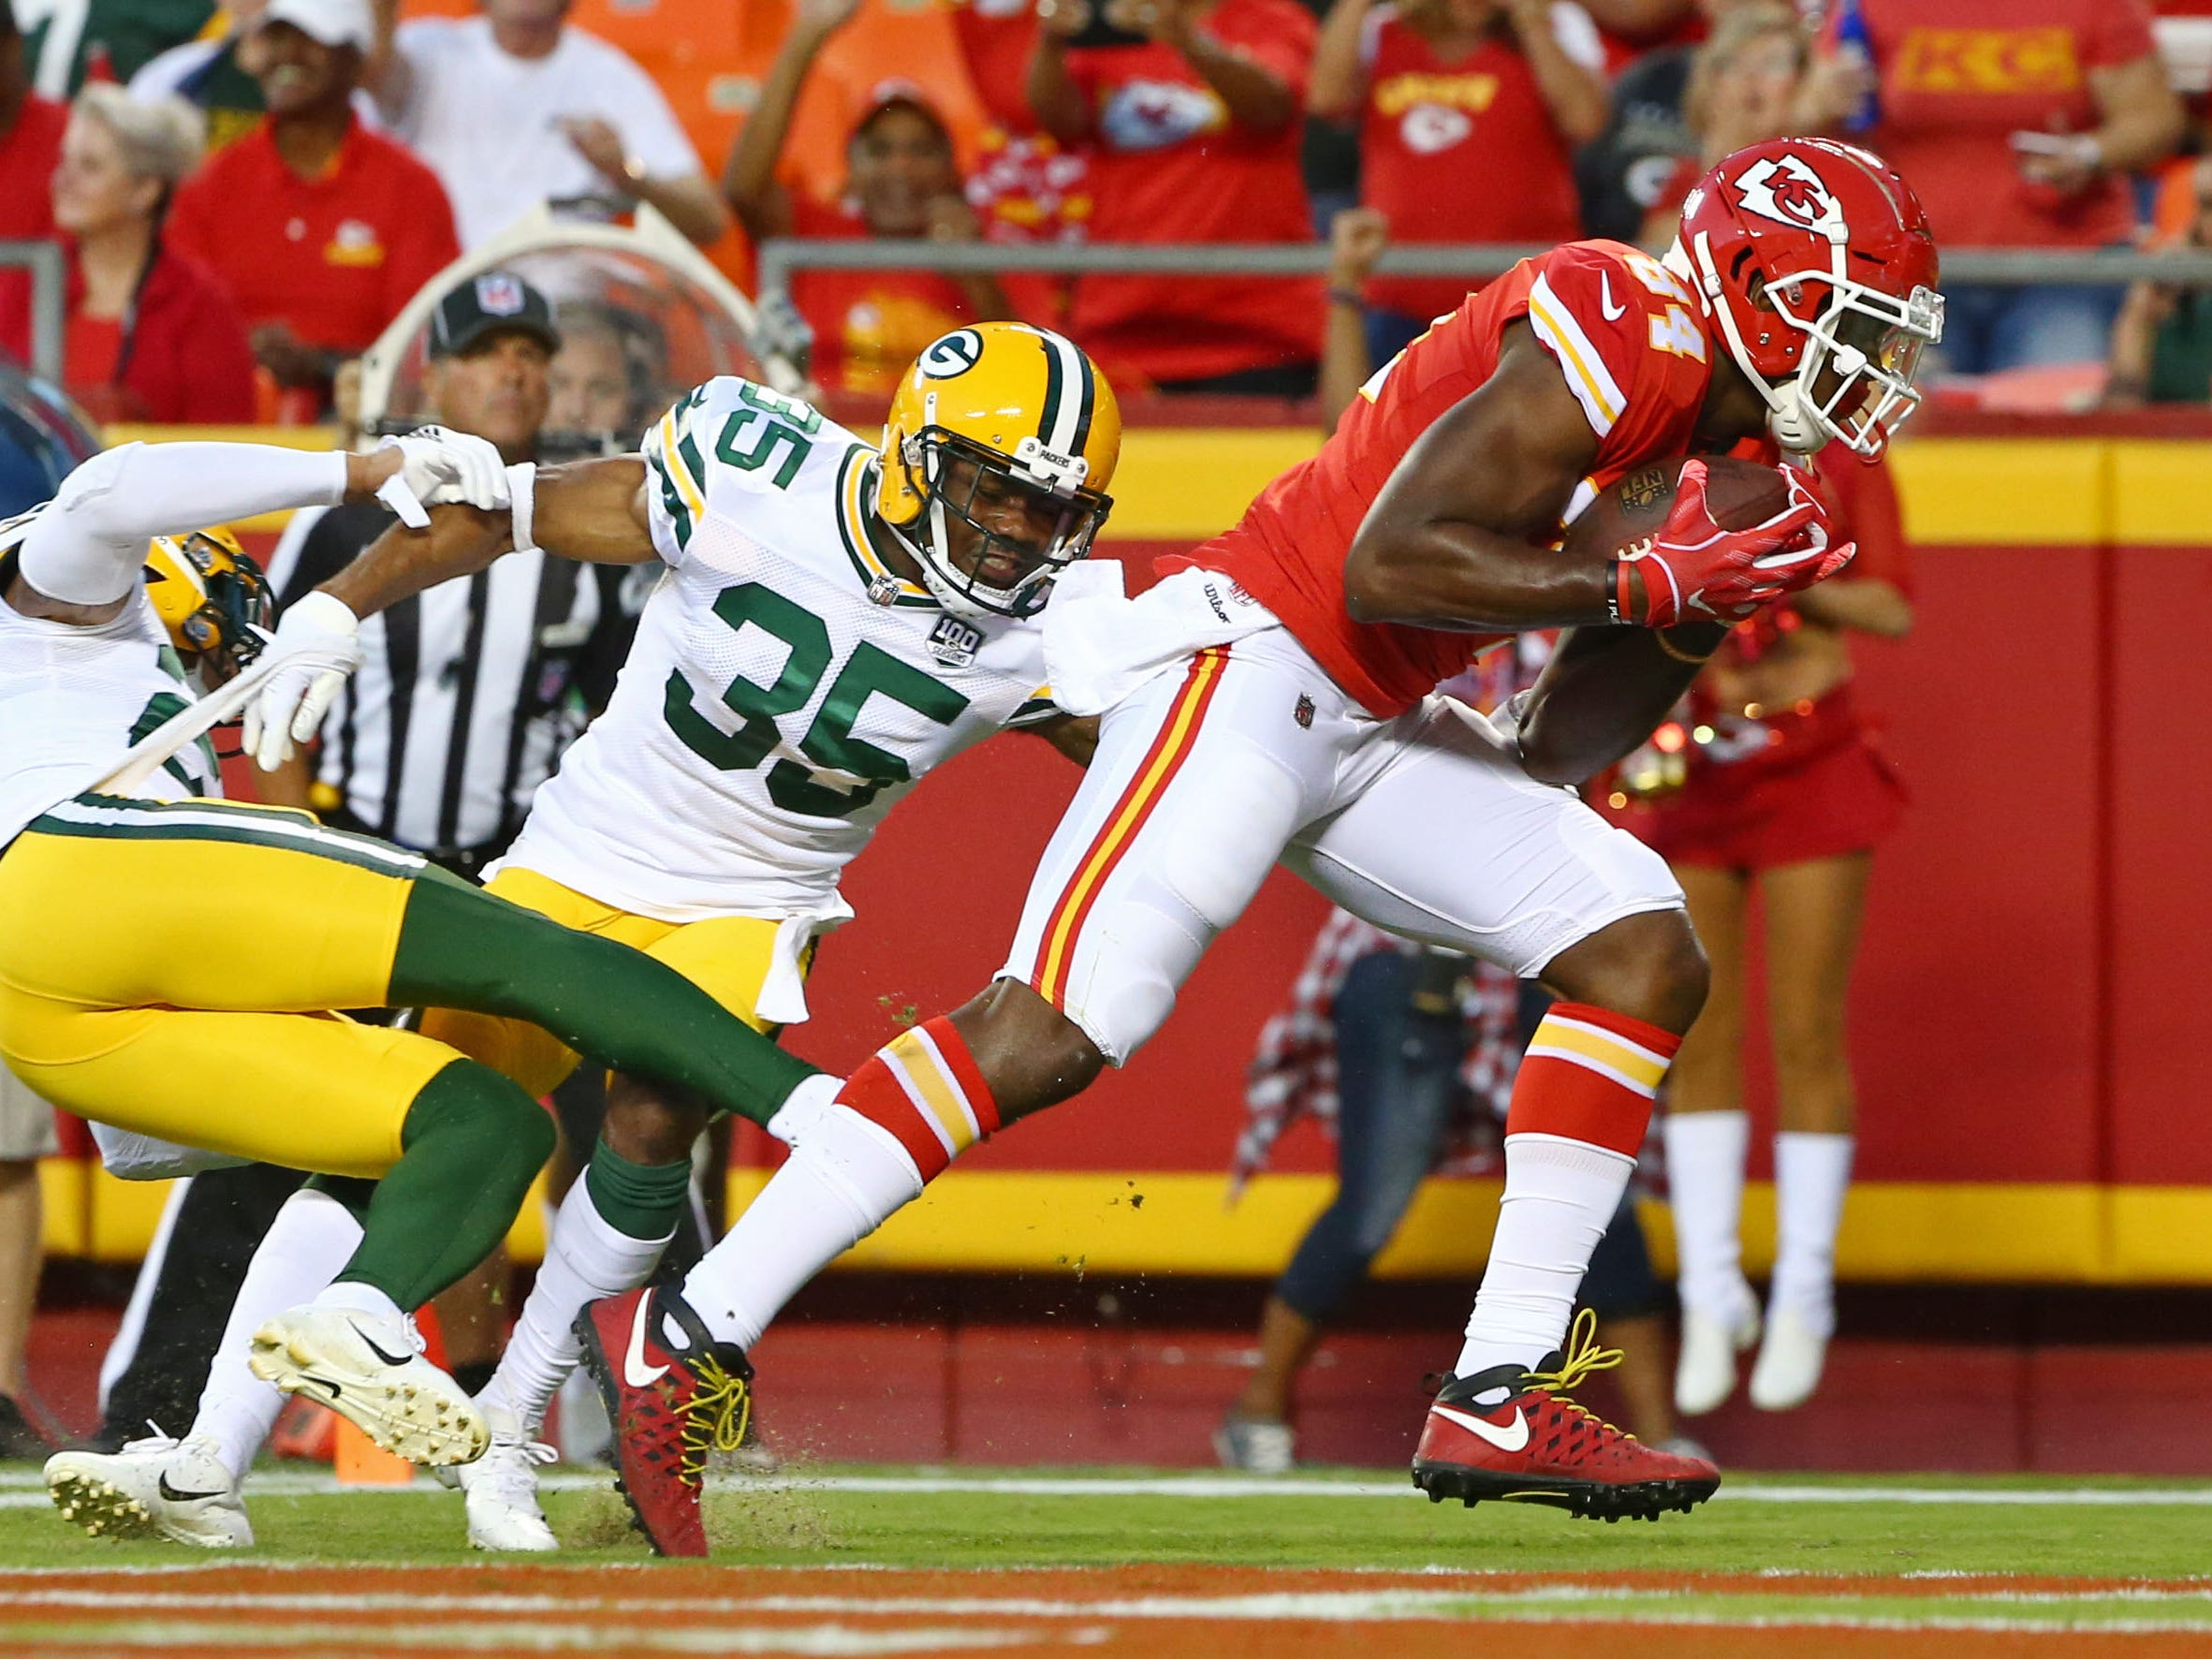 Aug 30, 2018; Kansas City, MO, USA; Kansas City Chiefs tight end Demetrius Harris (84) scores a touchdown as Green Bay Packers safeties Jermaine Whitehead (35) and  Josh Jones (27) defend in the first half at Arrowhead Stadium.